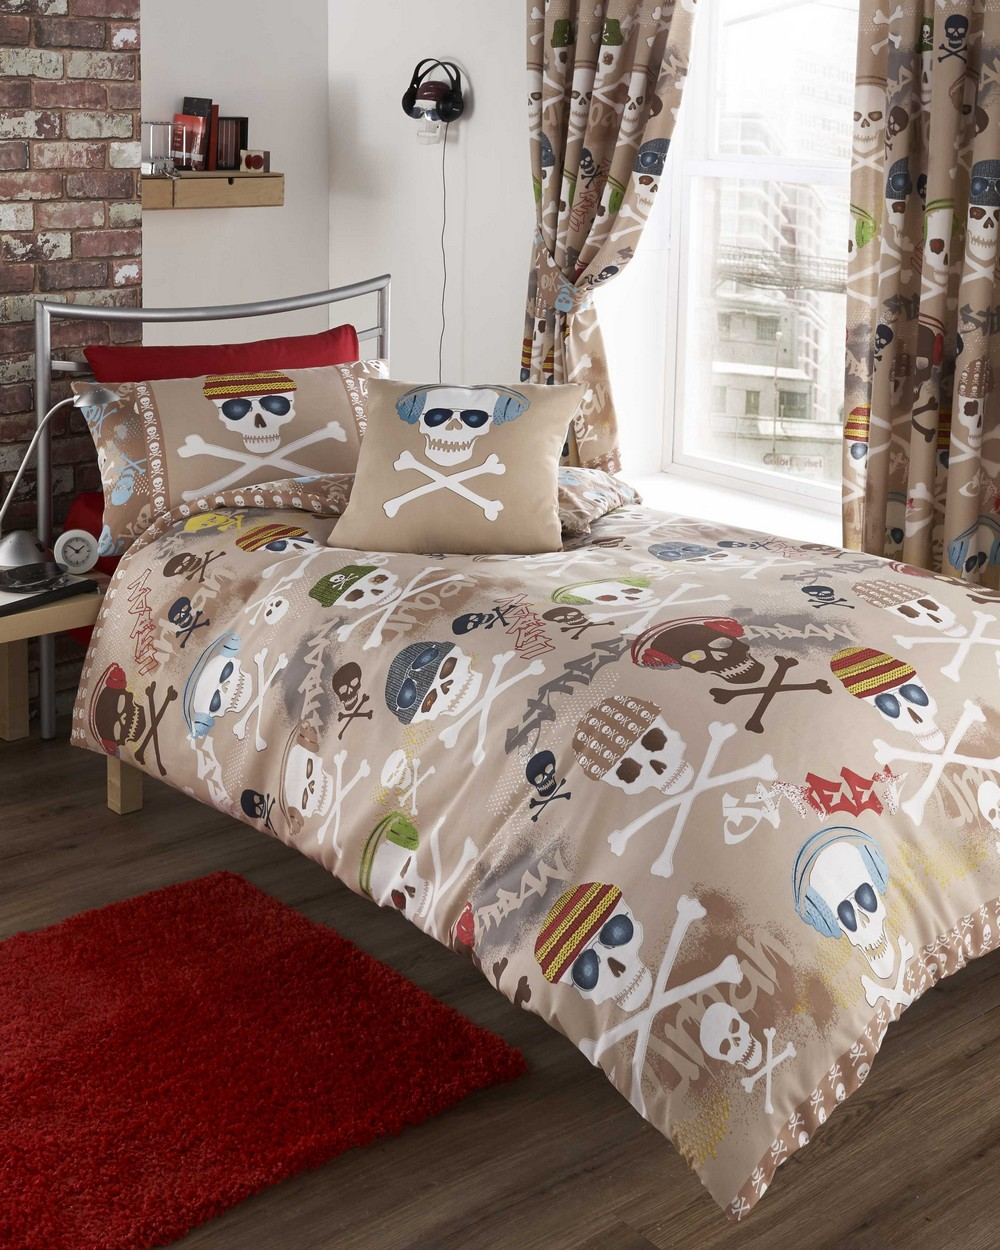 Boy S Quilt Duvet Cover Bedding Sets Single Or Double: Street Beats Duvet Cover Bed Sets Bedding Curtains Teenage